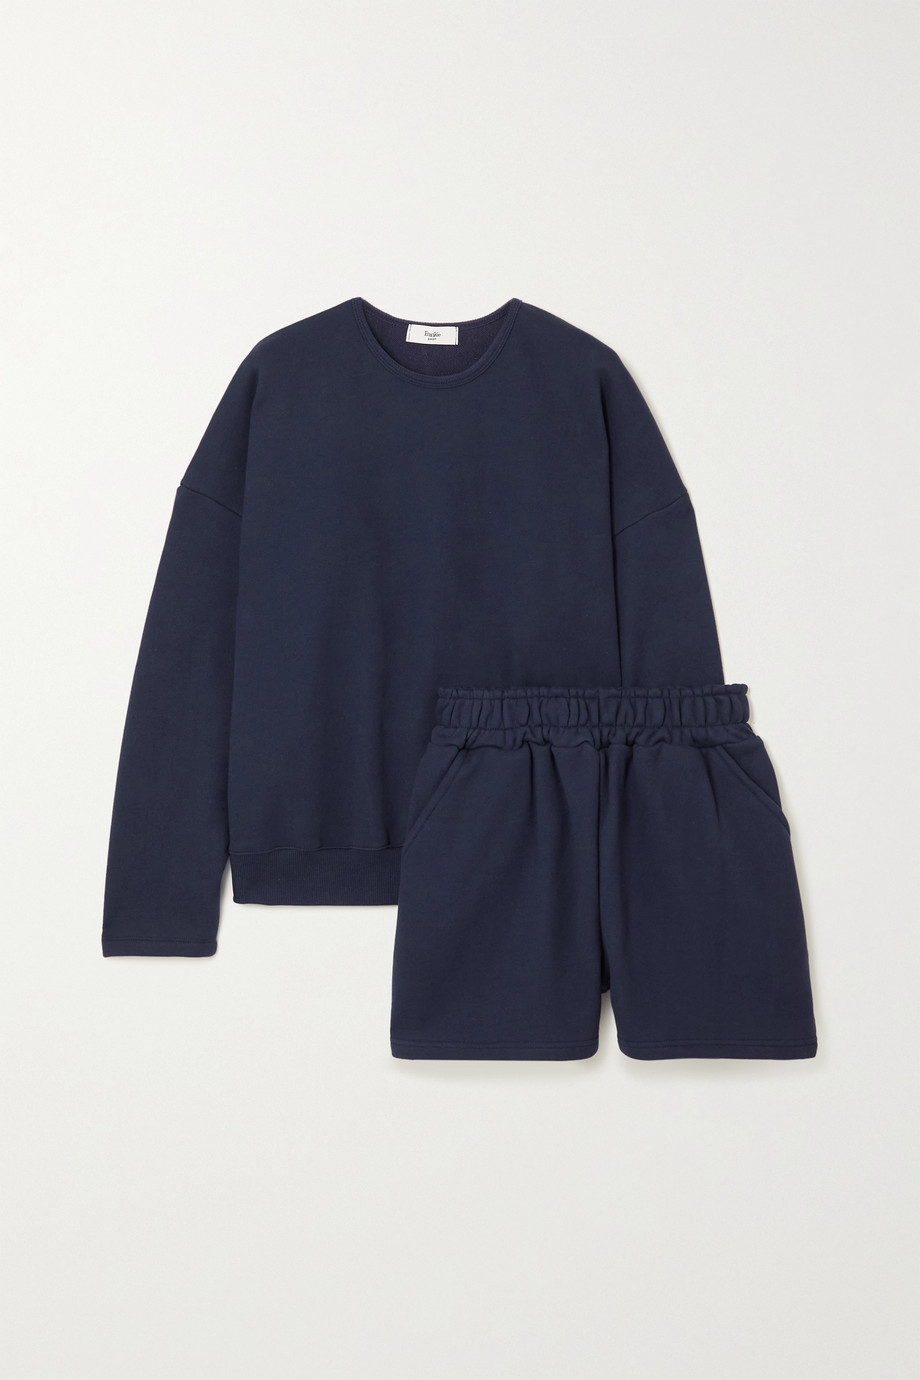 FRANKIE SHOP Jaimie oversized cotton-jersey sweatshirt and shorts set